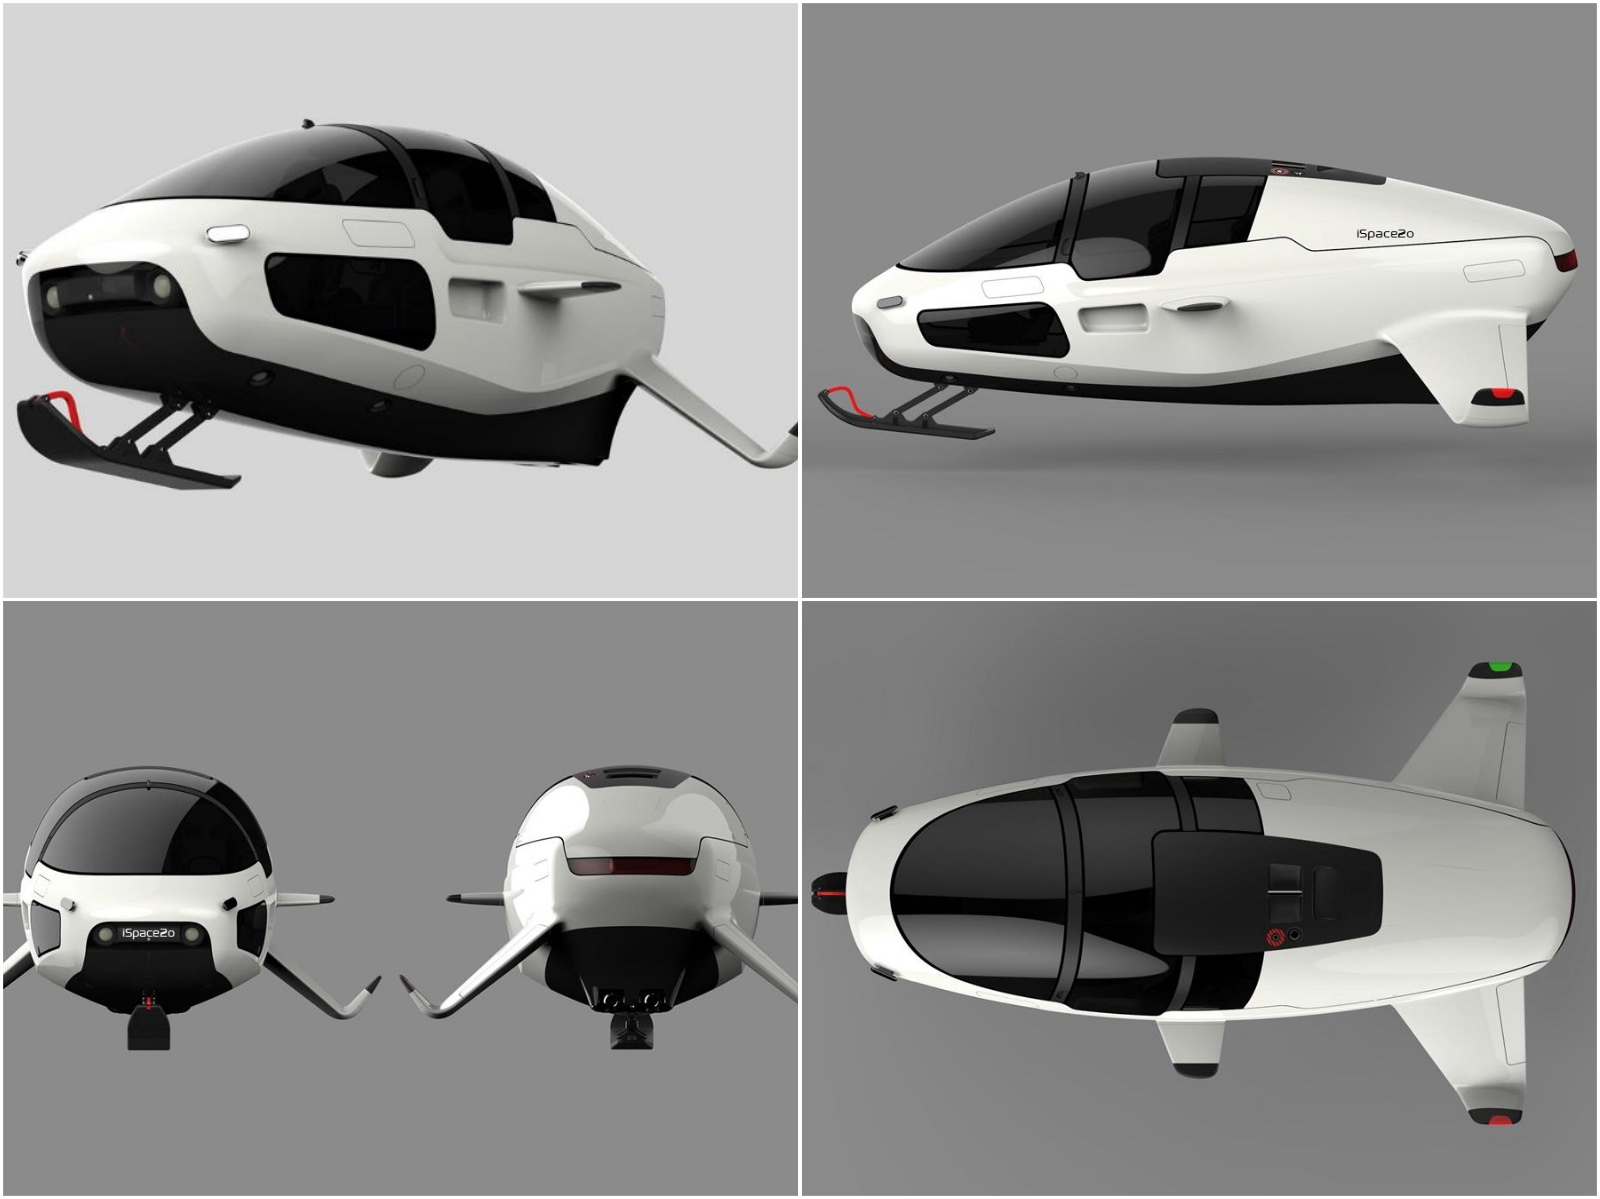 DeepSeaker DS1 yacht toy - Image © iSpace2O